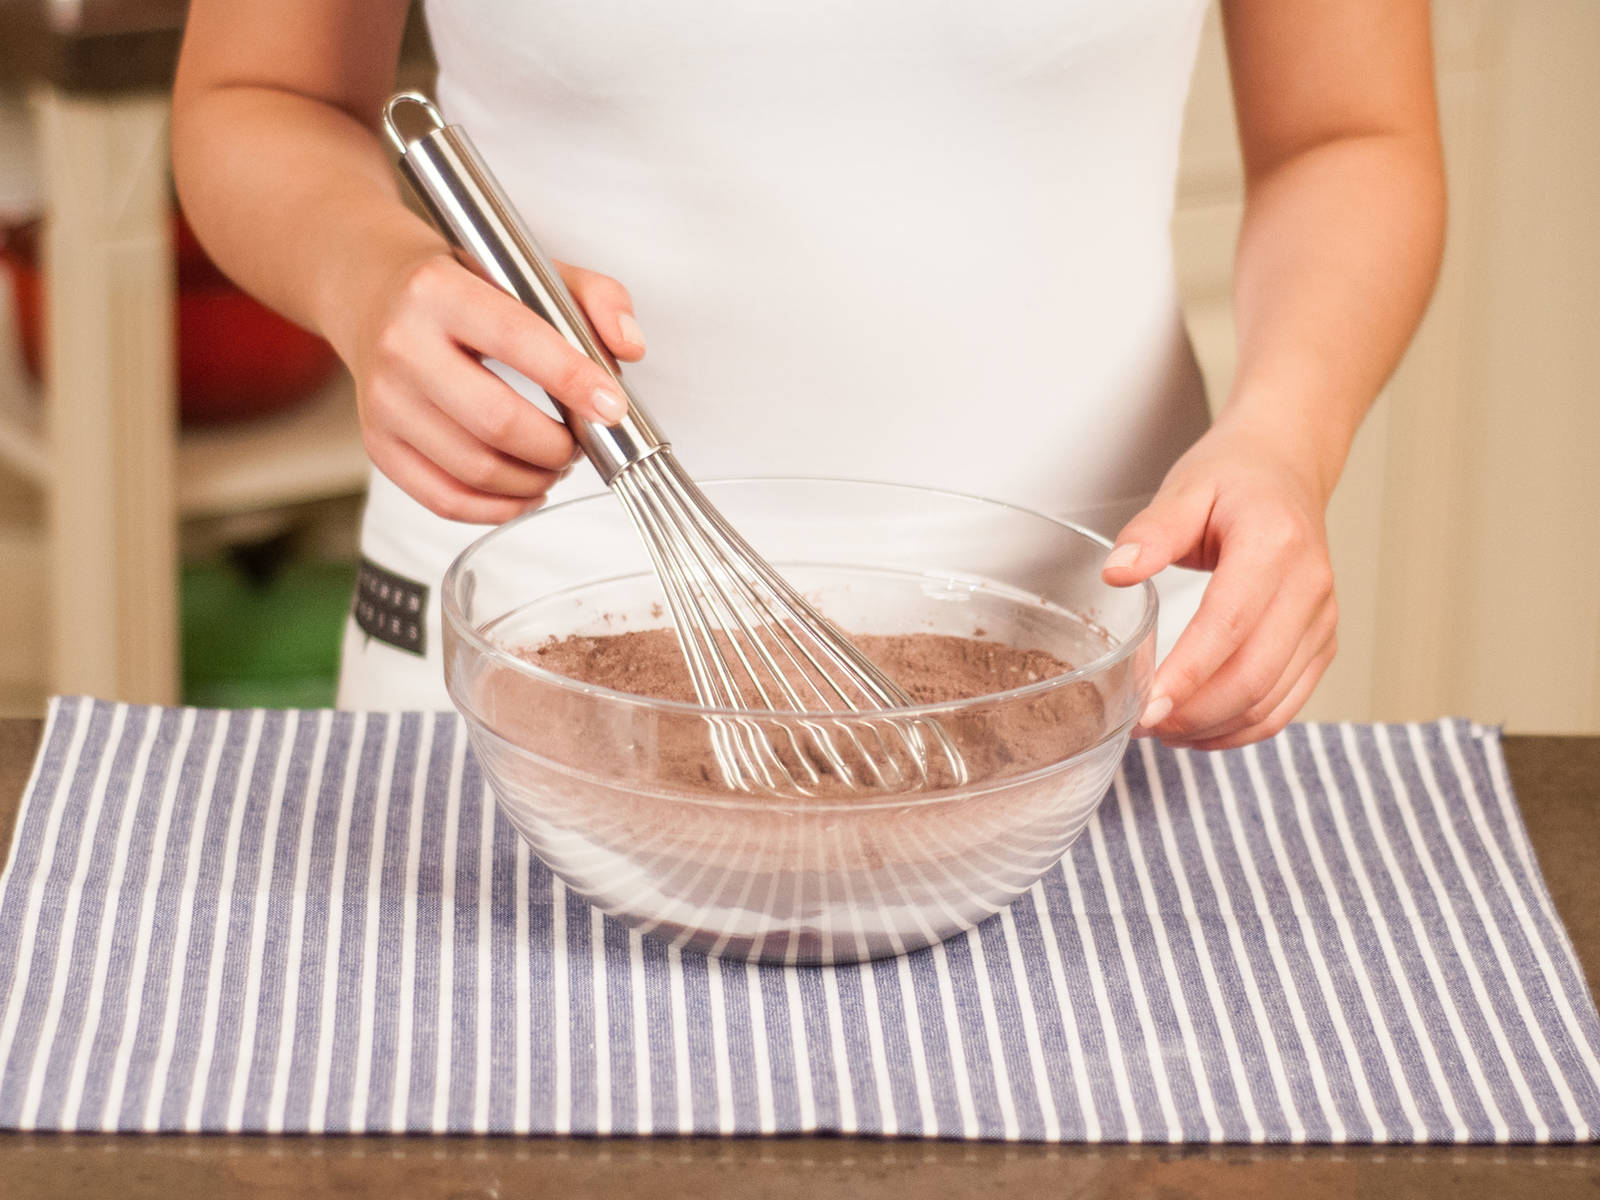 In a large bowl, whisk together cocoa powder, all-purpose flour, sugar, baking powder, and seeds from the vanilla bean.